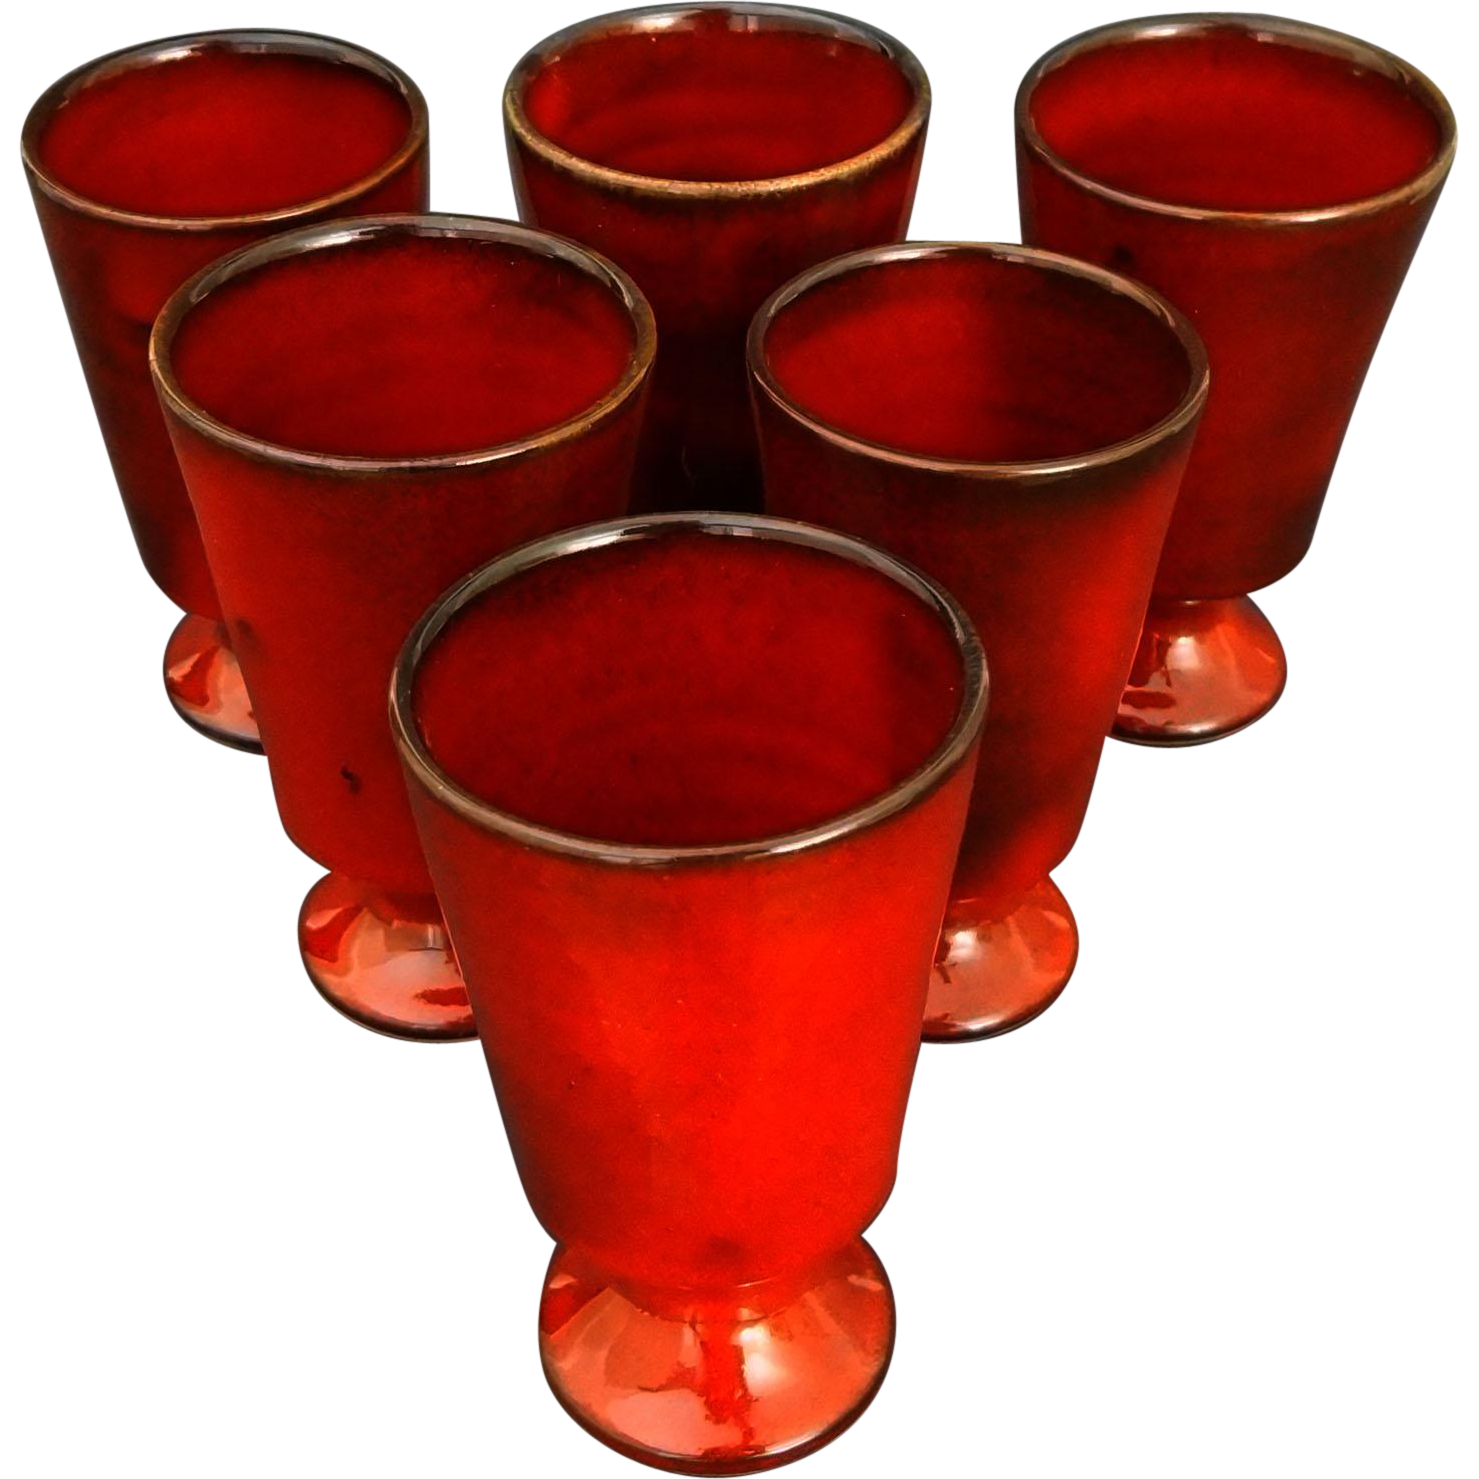 French Cote d'Azur Studio Pottery Red Glazed Faience Set of Six Drinking Vessels / Goblets signed Casy La Turbie - 20th Century, France